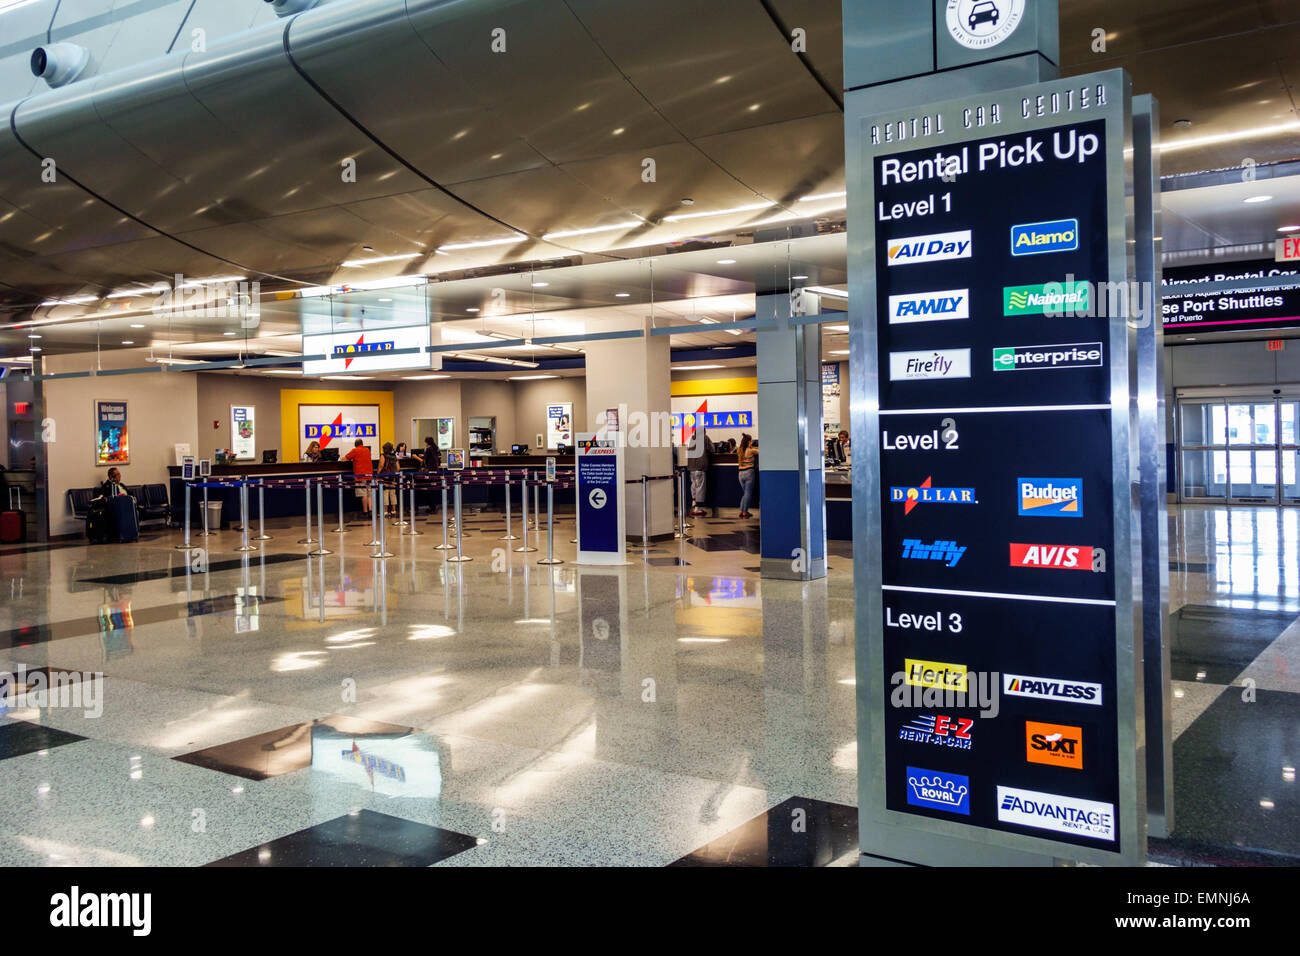 Dfw Airport Car Rental Location